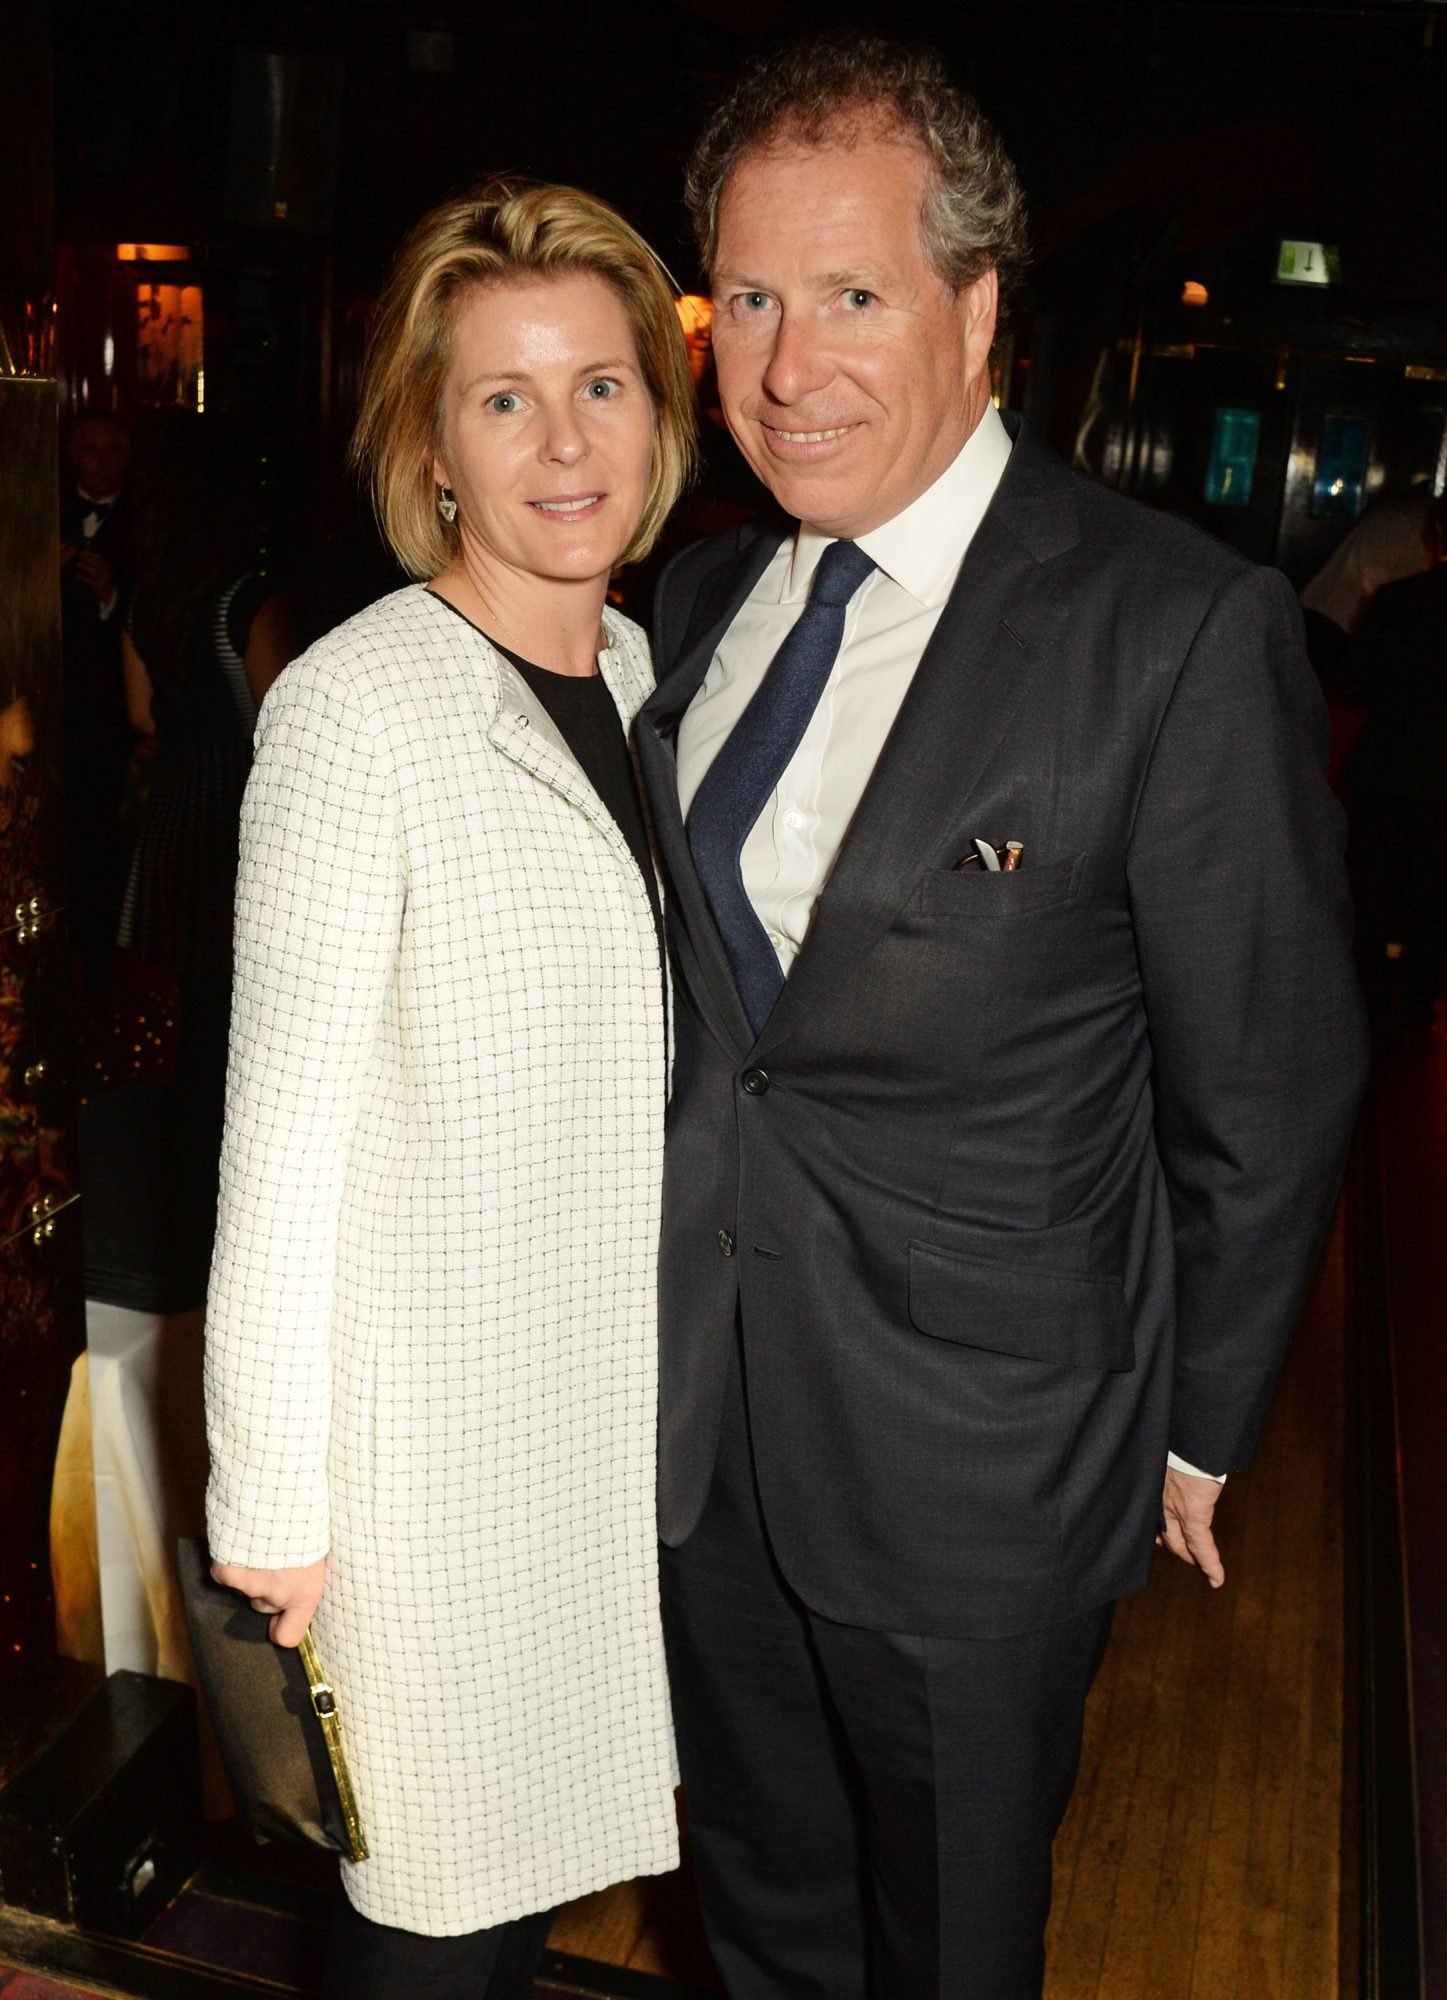 Dinner At Annabel's To Celebrate Fenton Bailey's New Documentary About Famous Fashion Photographer Robert Mapplethorpe